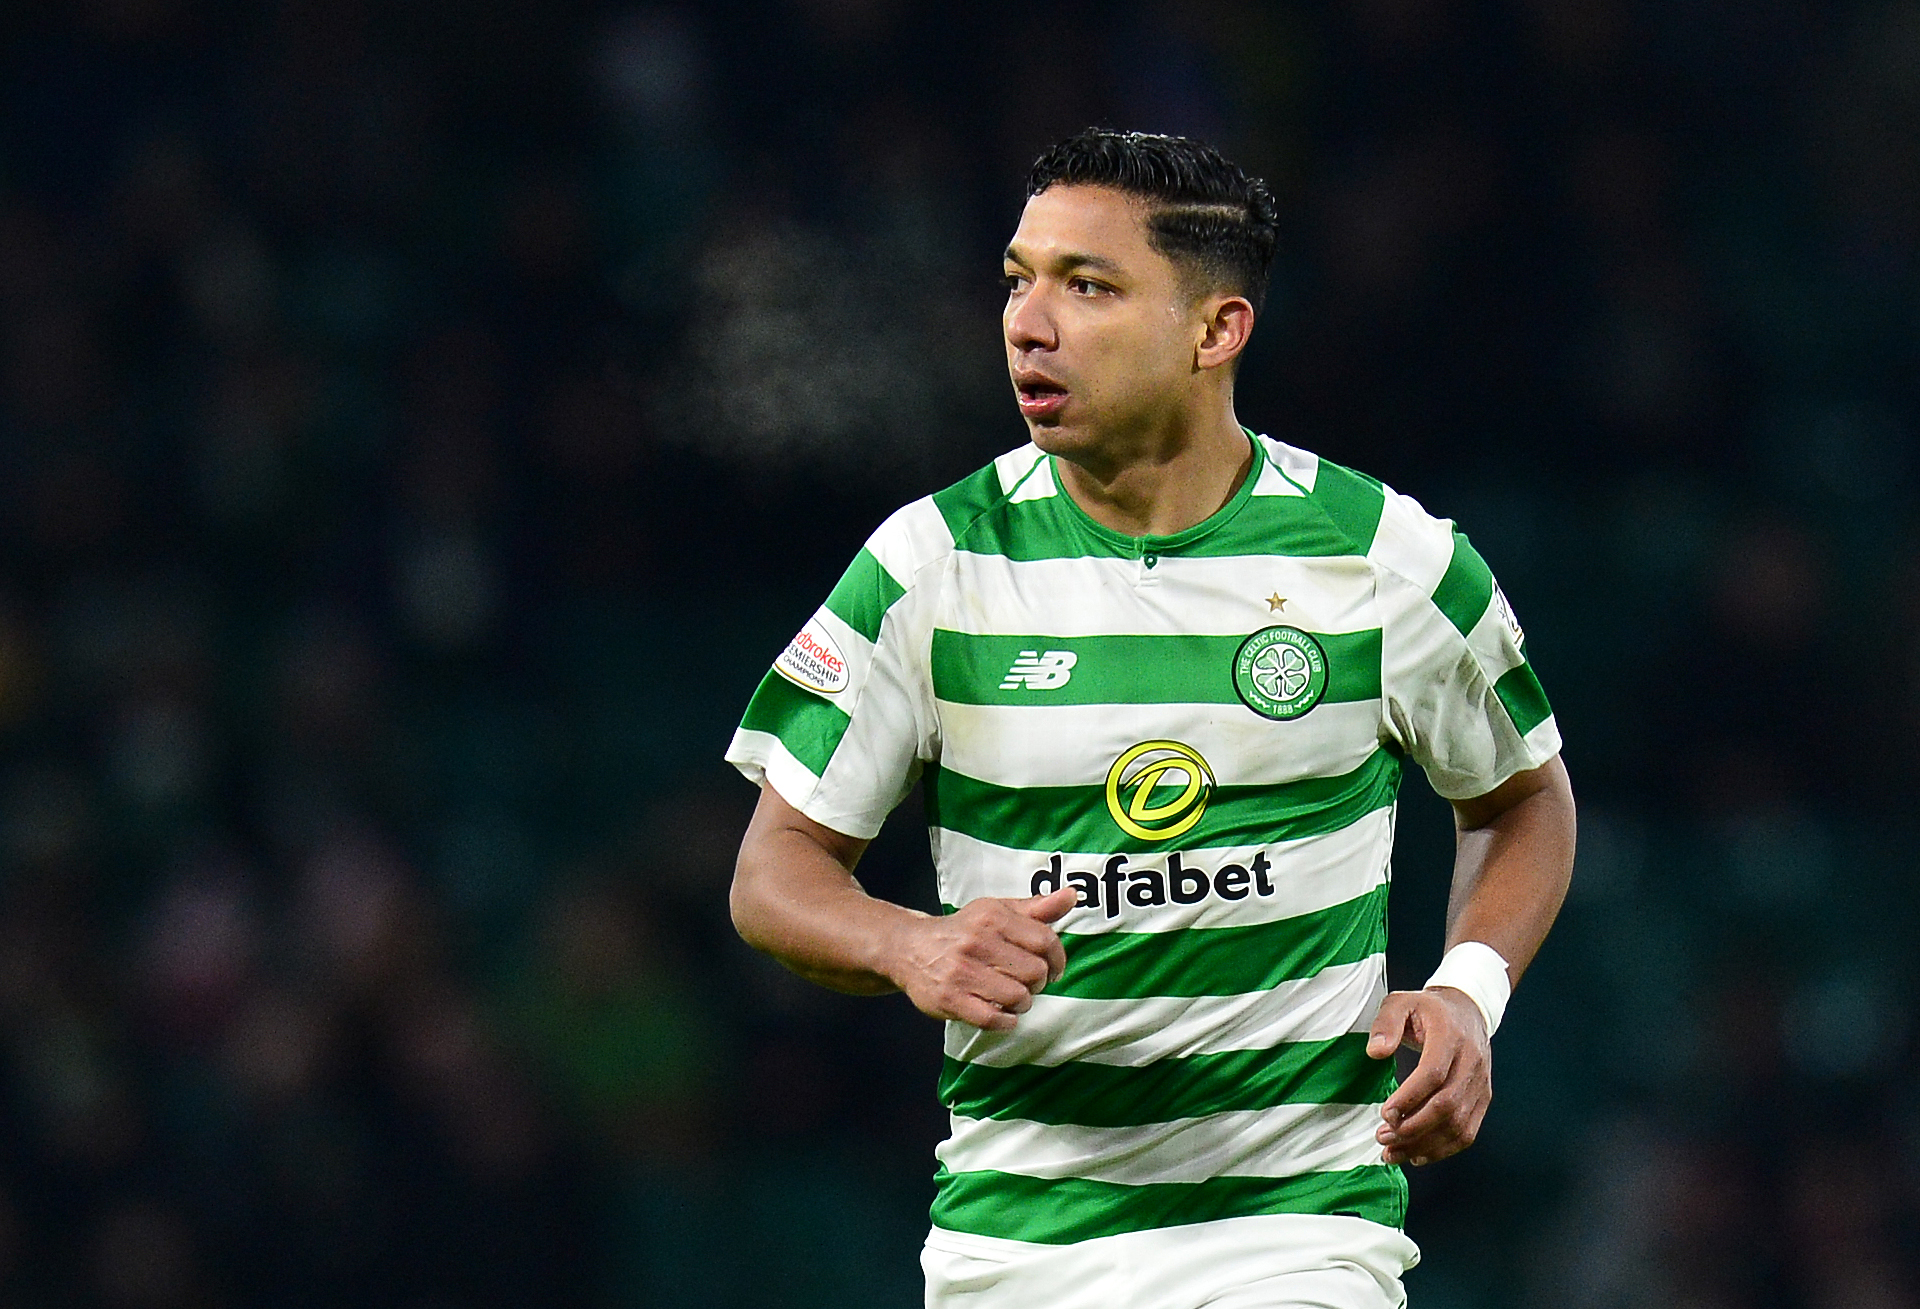 Celtic hero Emilio Izaguirre considering MLS and Colombia offers but rival Olimpia move 'IMPOSSIBLE'